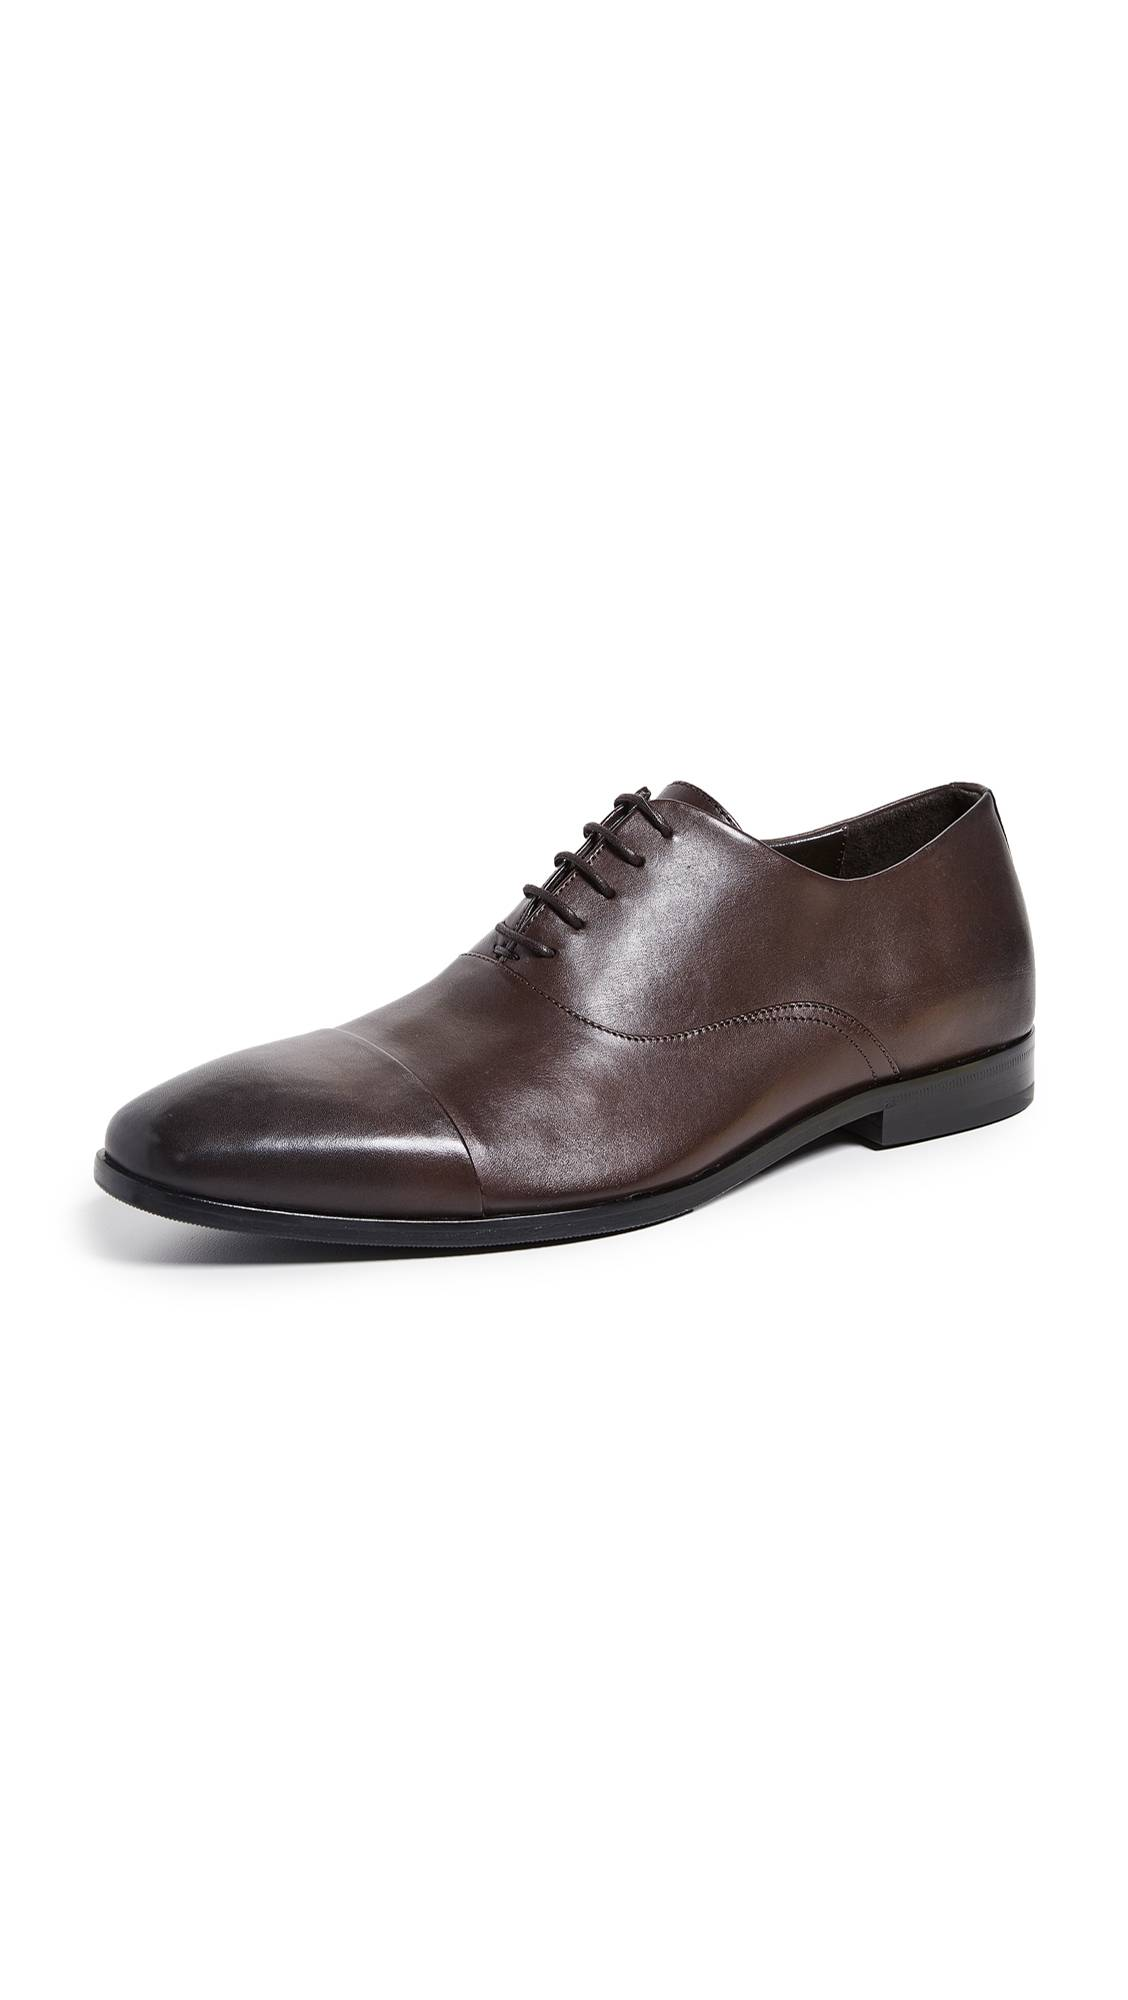 Boss Hugo Boss Highline Cap Toe Derby Lace Up Shoes - Dark Brown - Size: 8